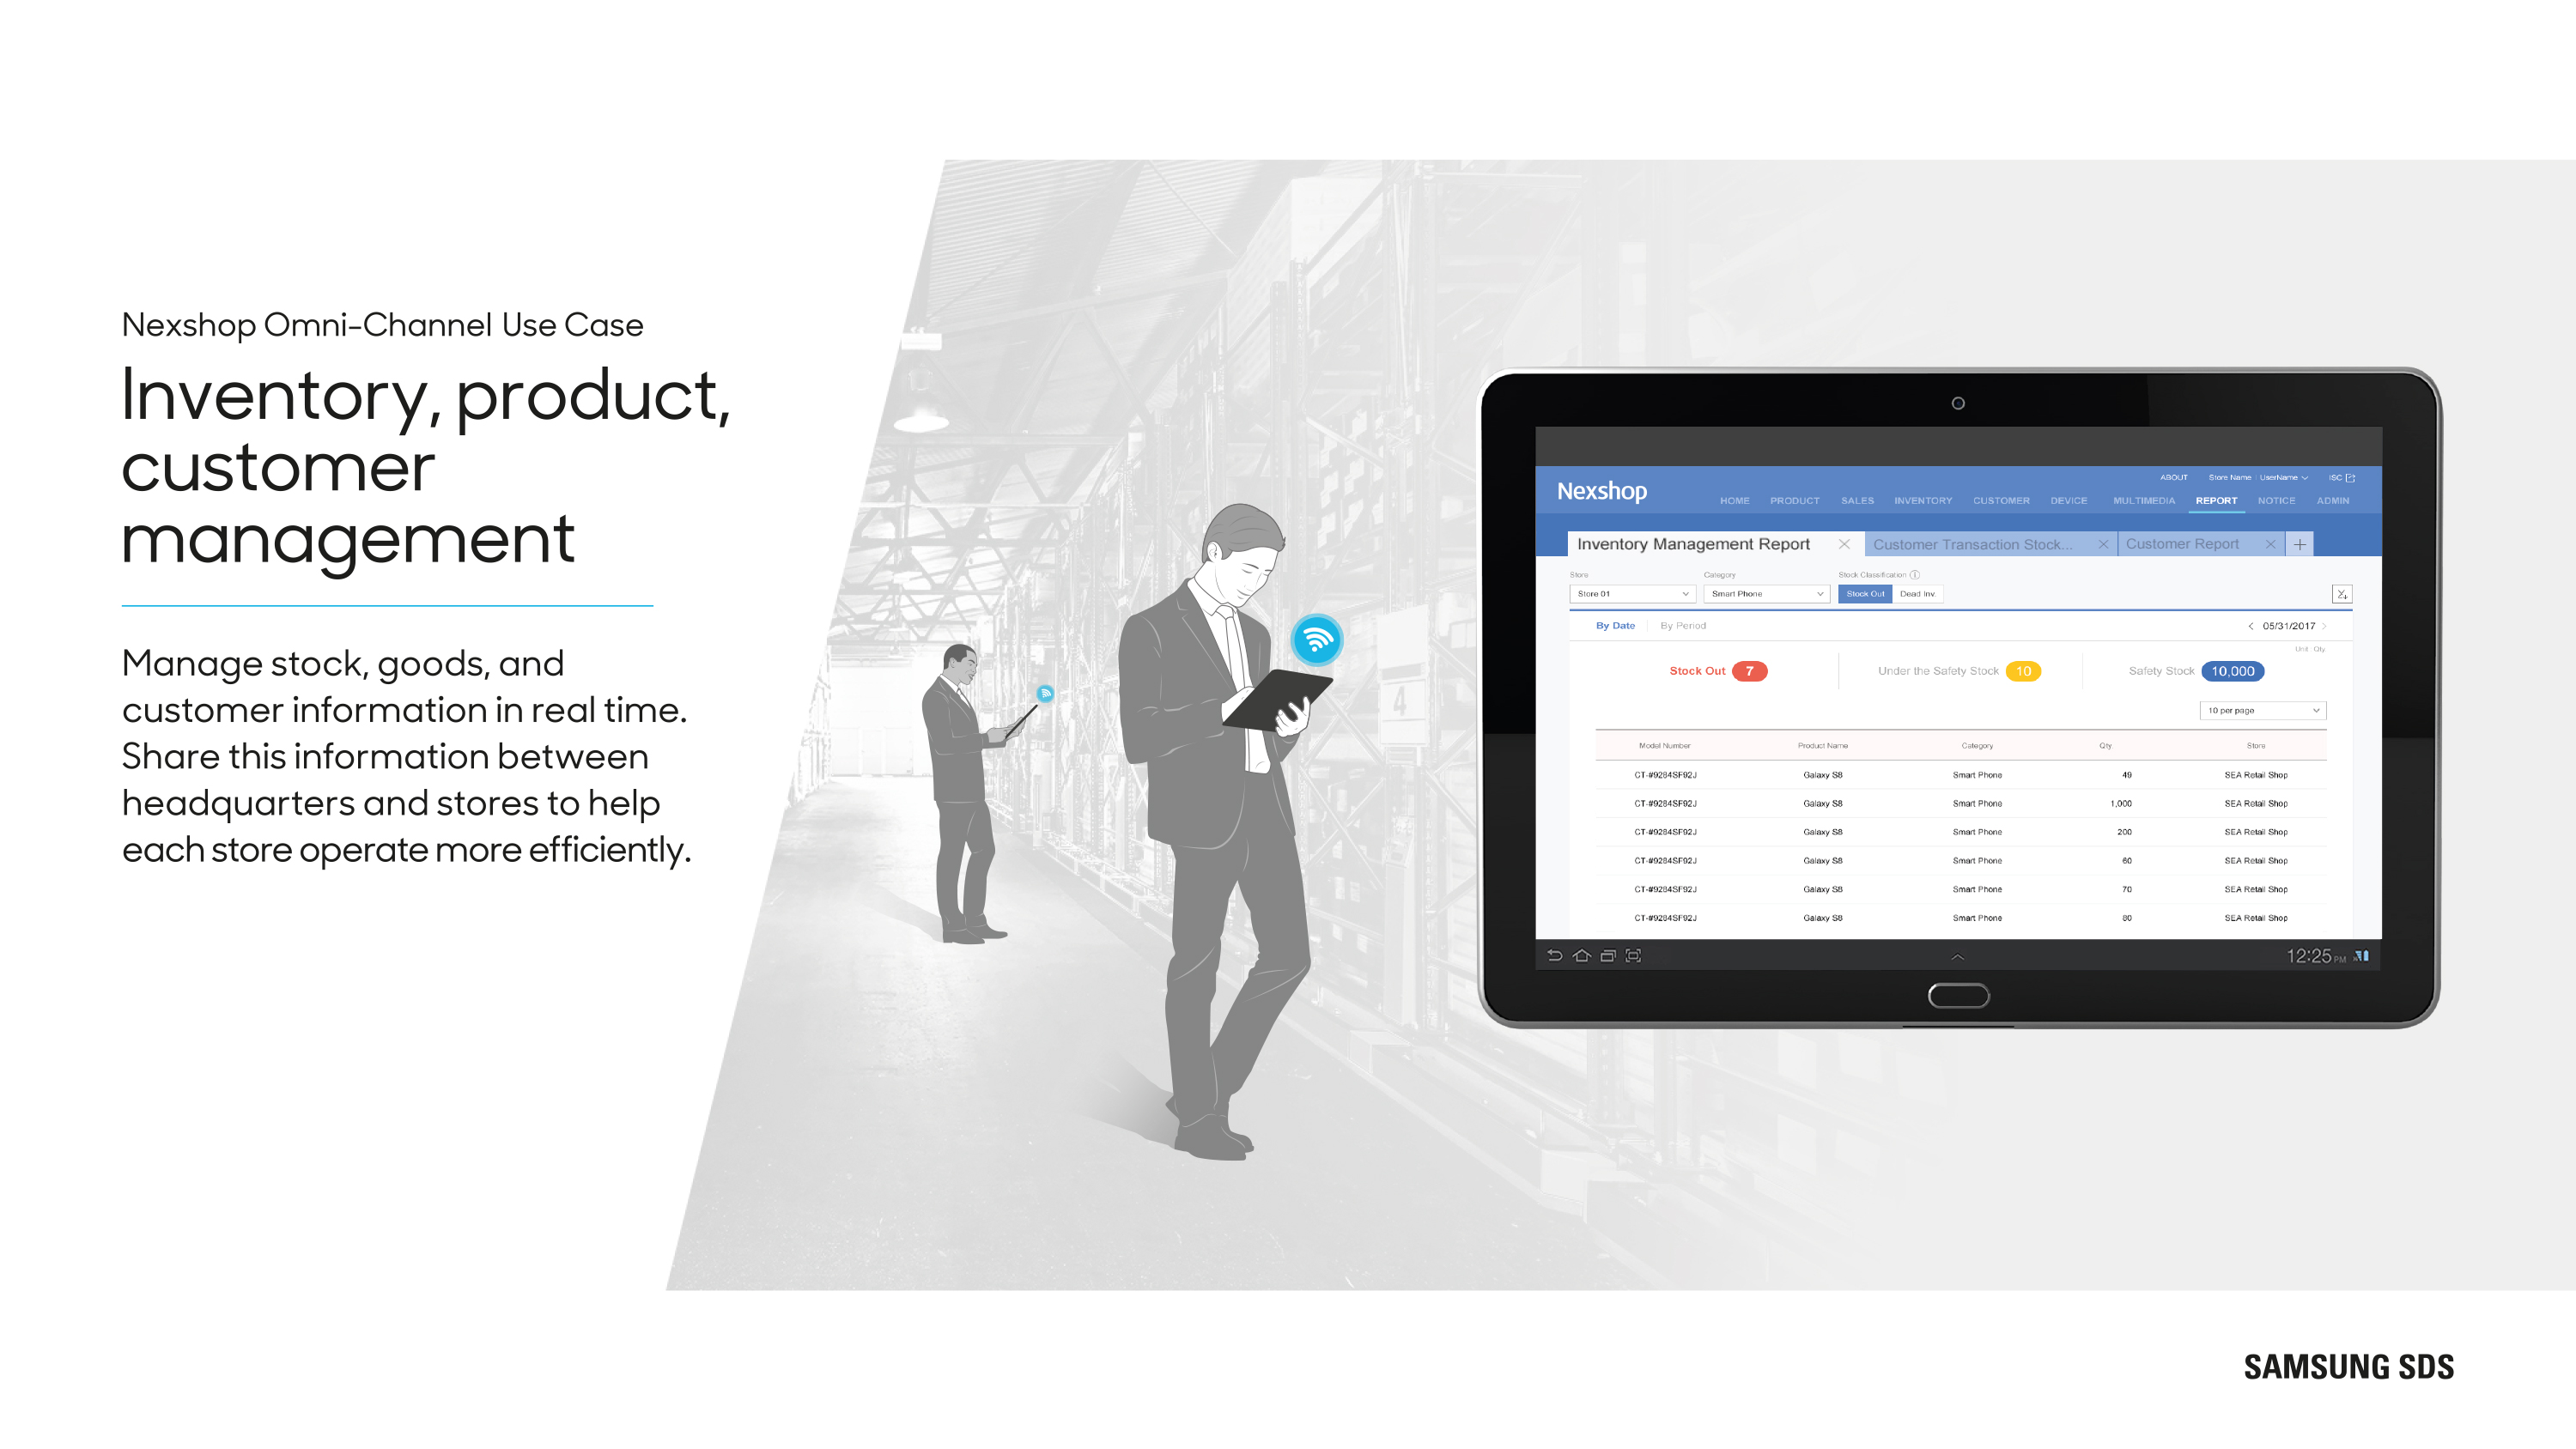 Inventory, product, customer management